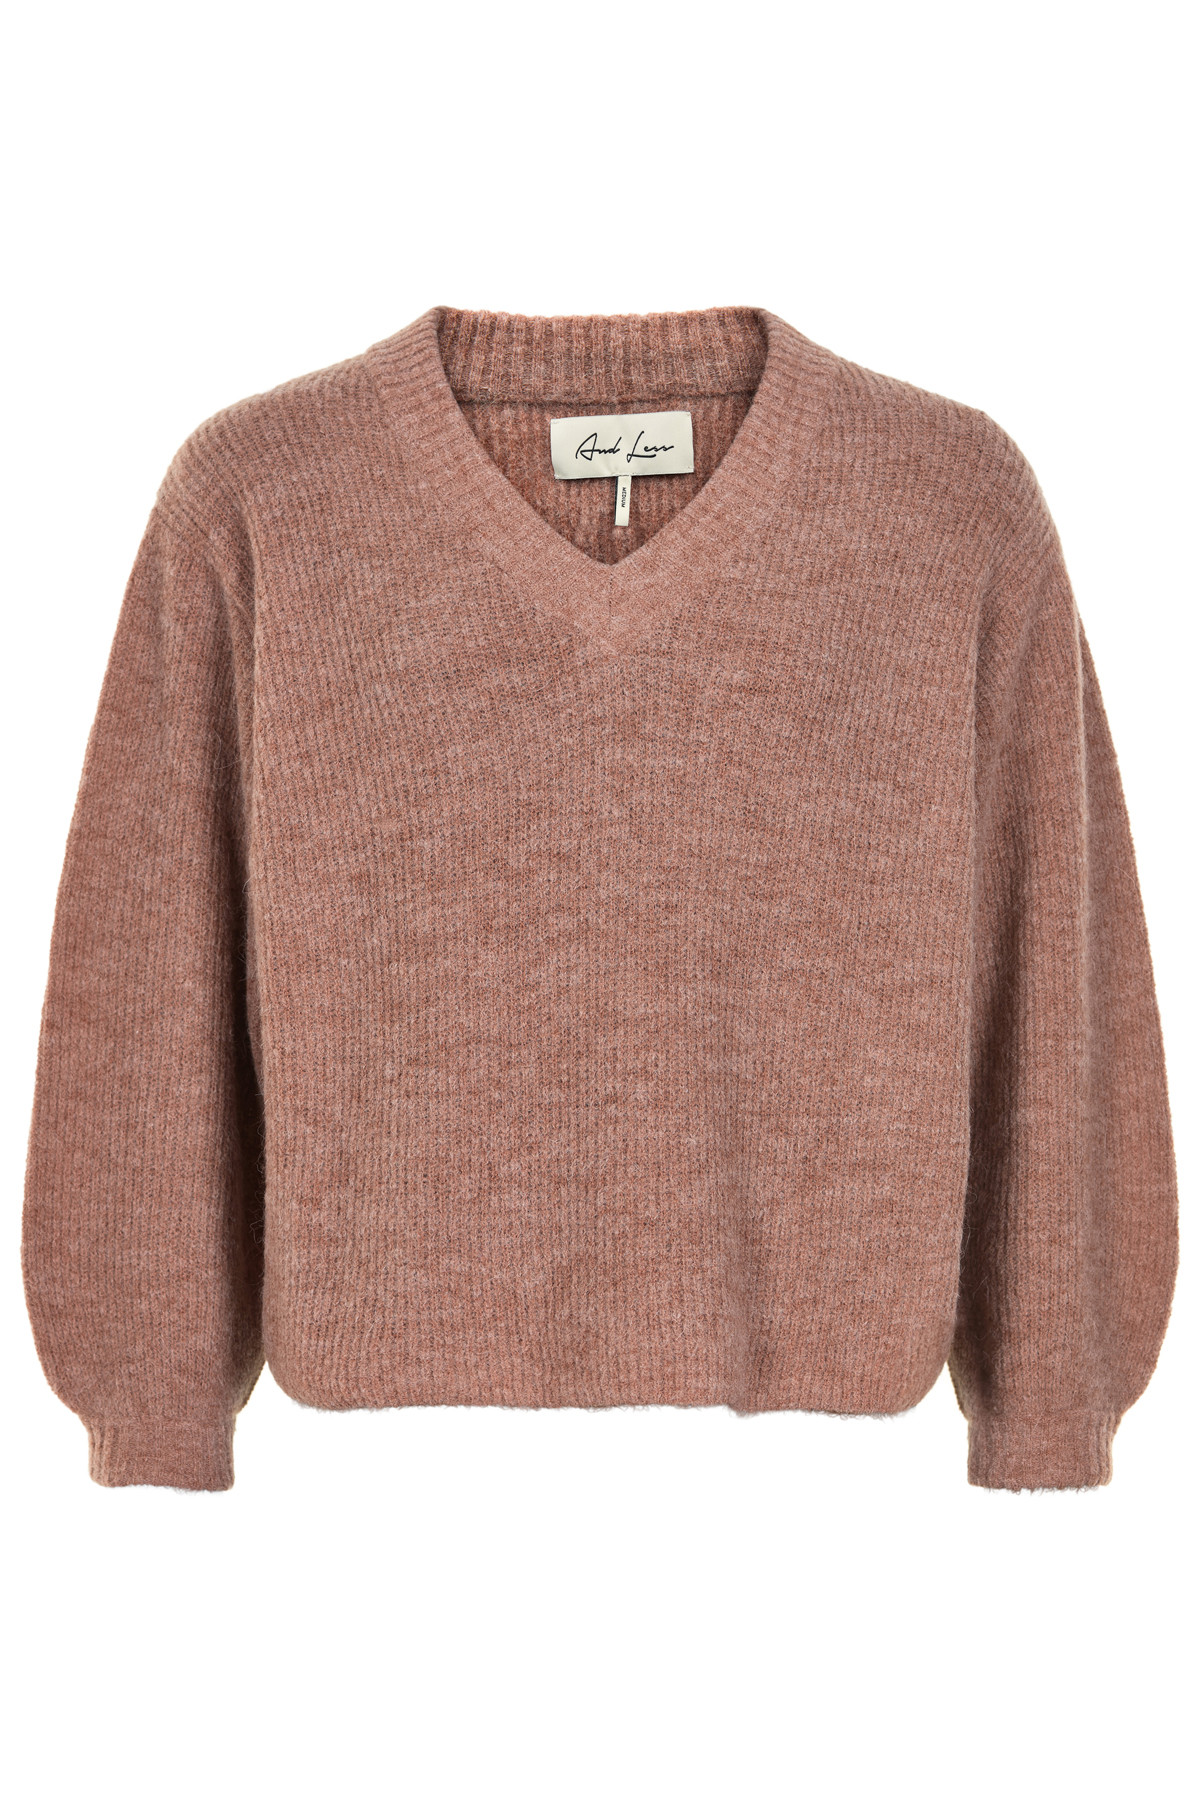 Image of   AND LESS JISKA PULLOVER 5419204 (Burlwood, M)